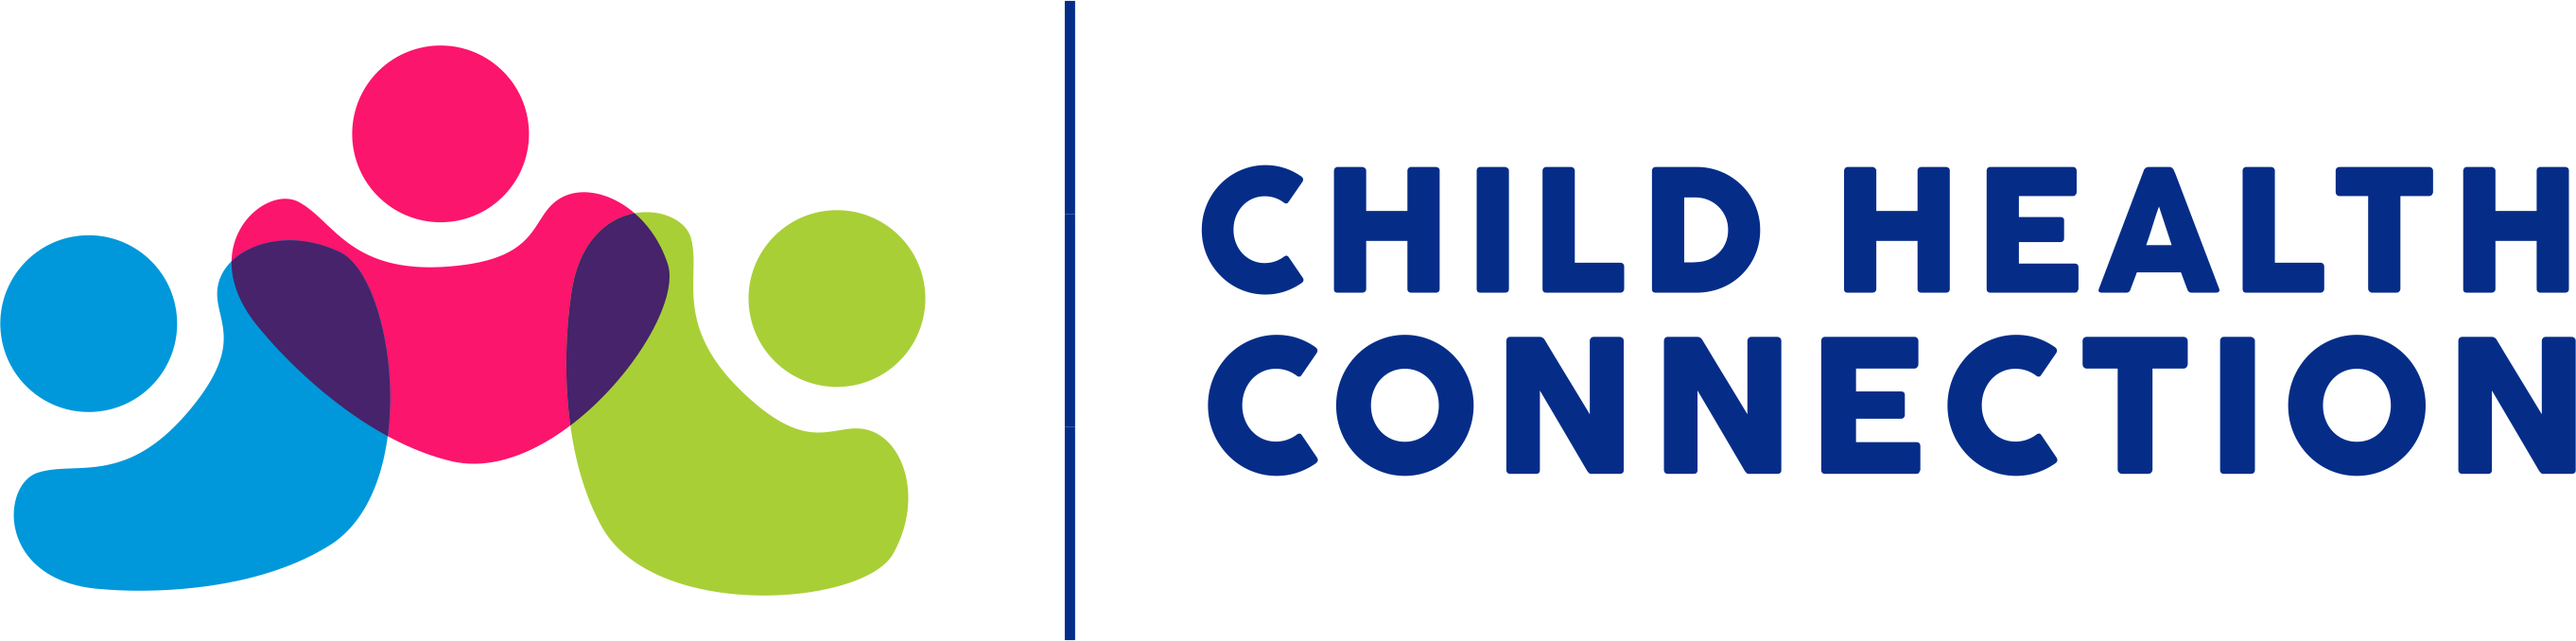 Child Health Connection